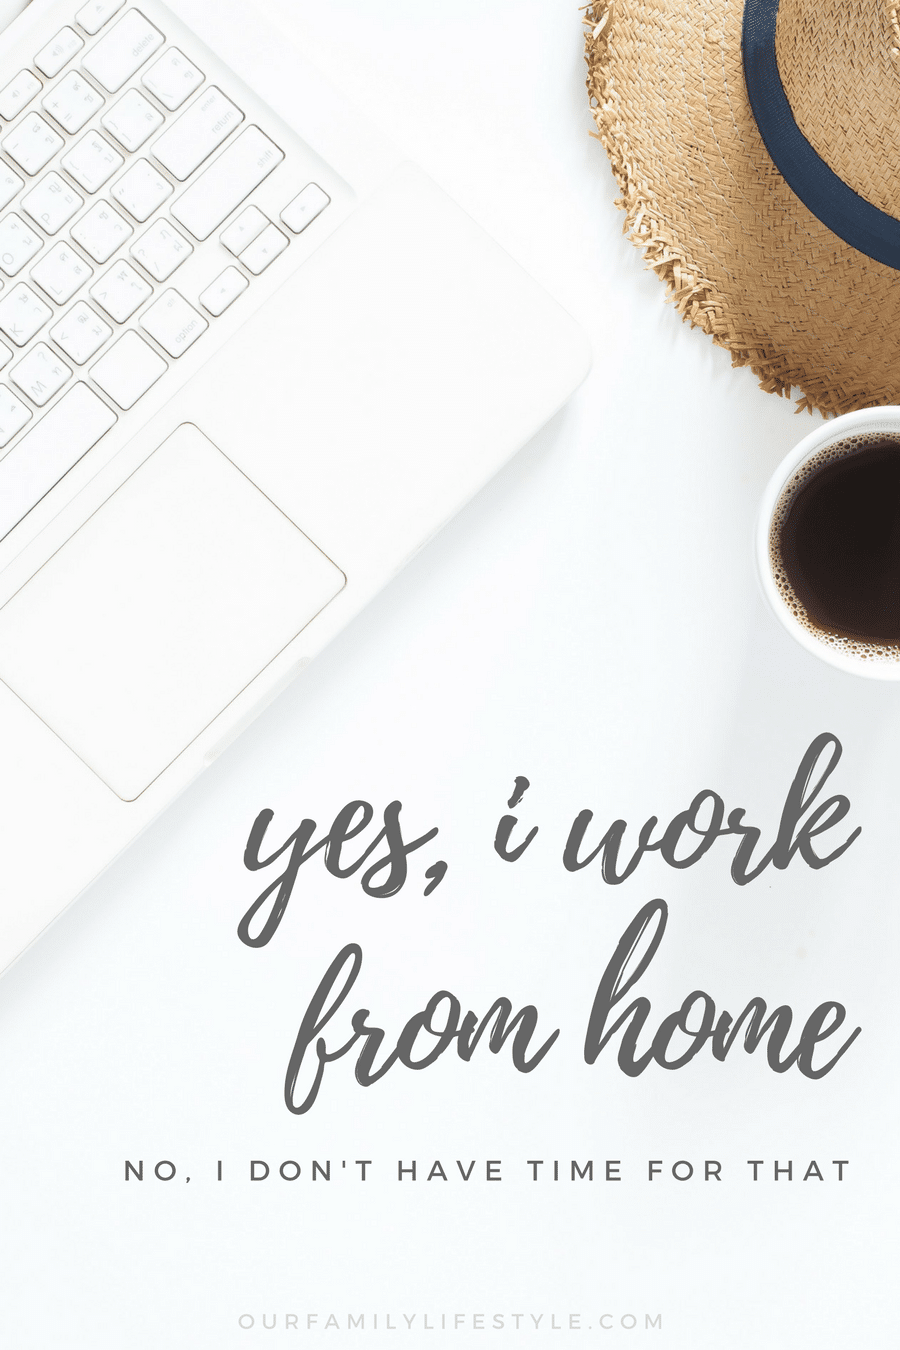 yes, i work from home. no, i don't have time for that.